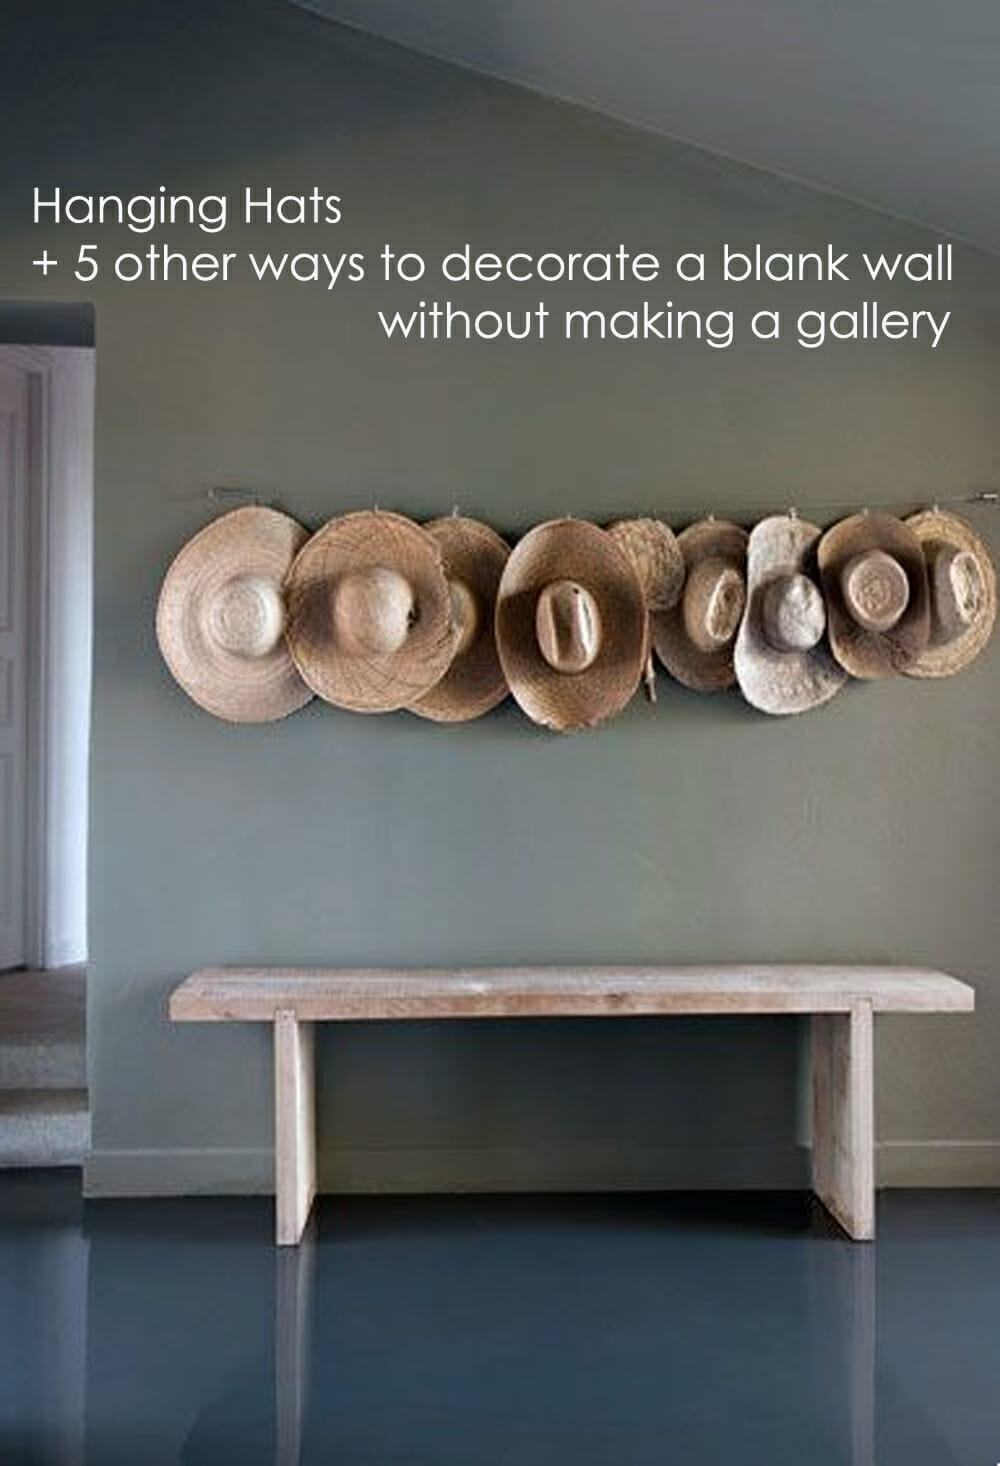 Hanging Hats and 5 other ways to decorate a blank wall copy